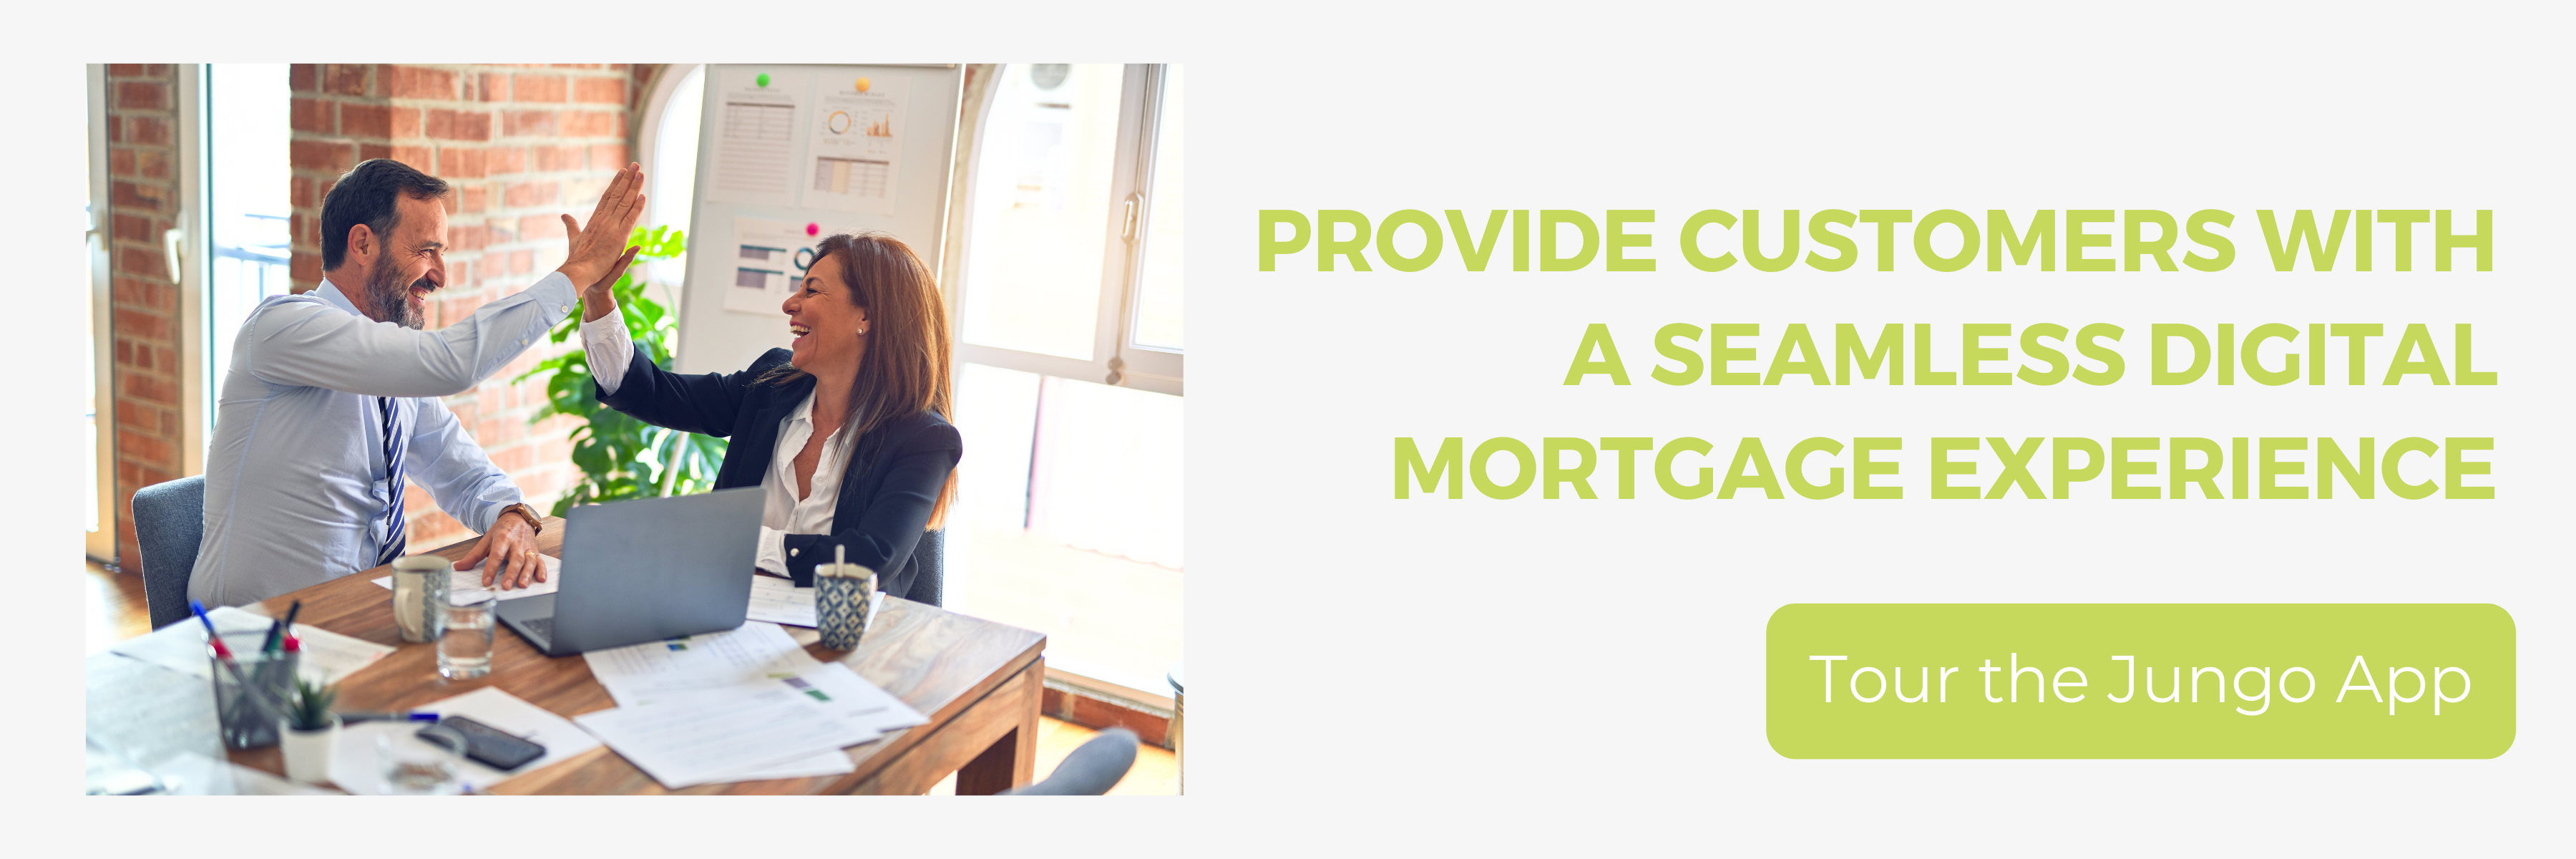 Seamless Mortgage Experience